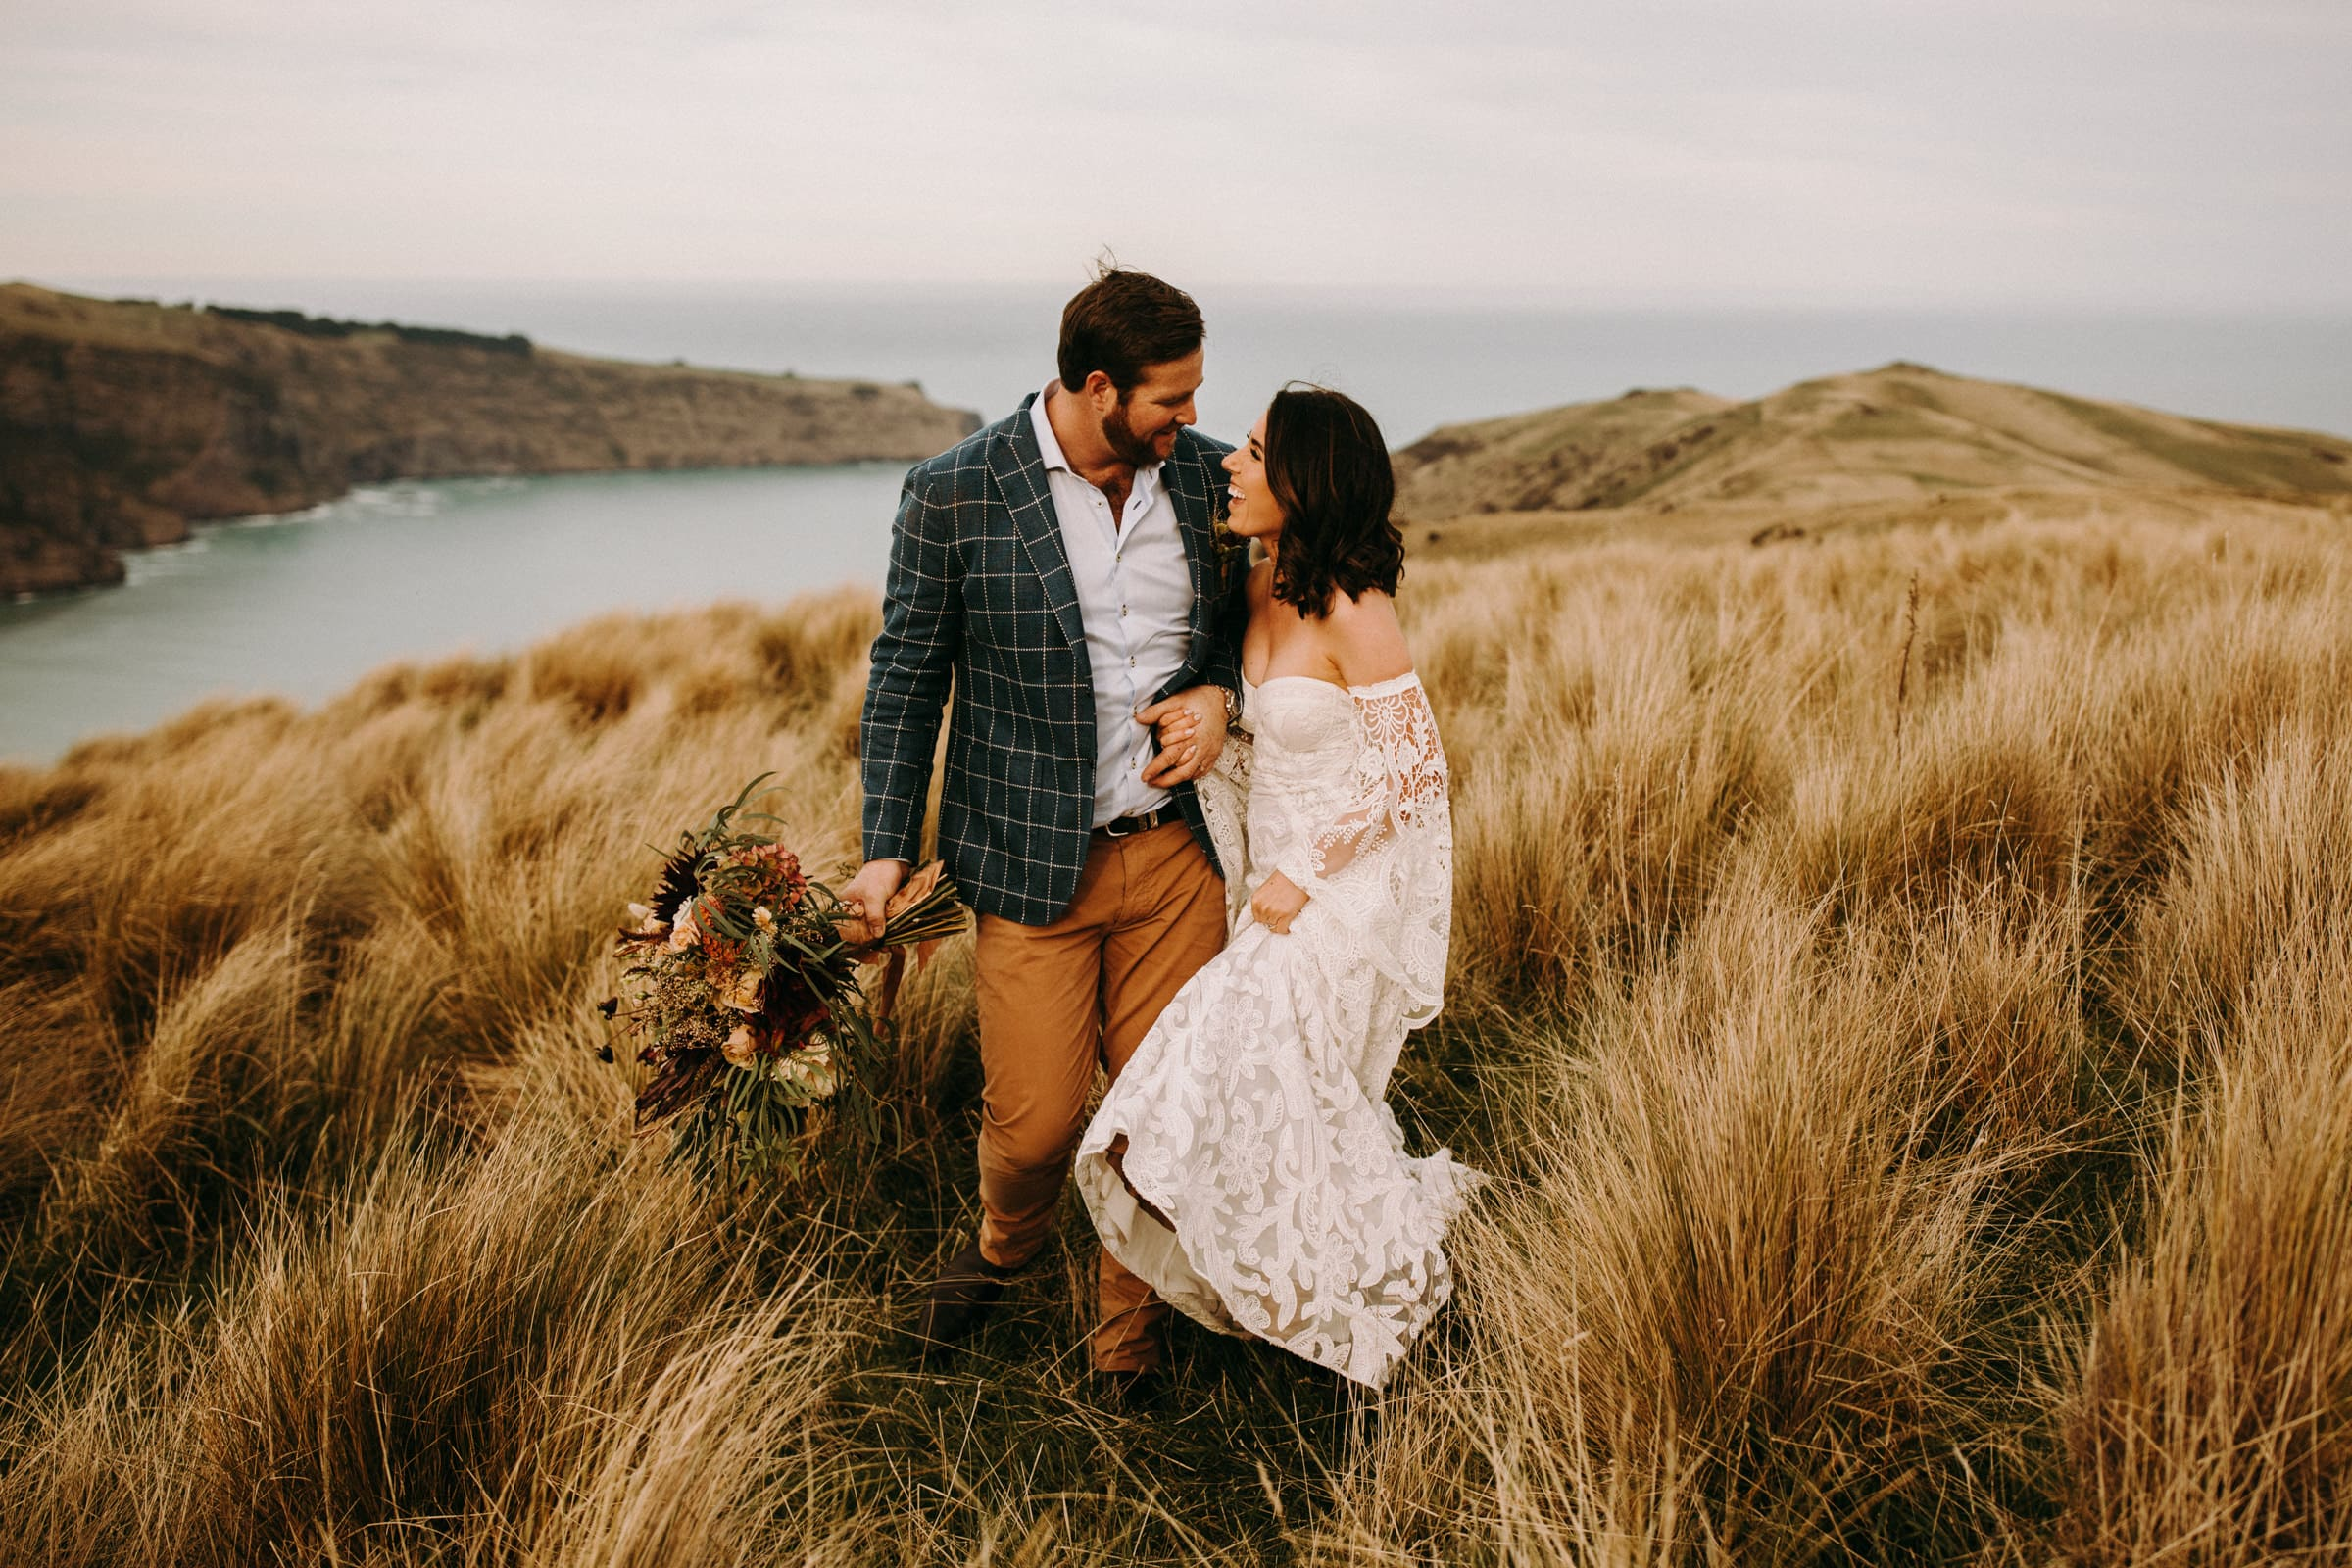 A wedding couple is standing in a meadow and is looking at each other.